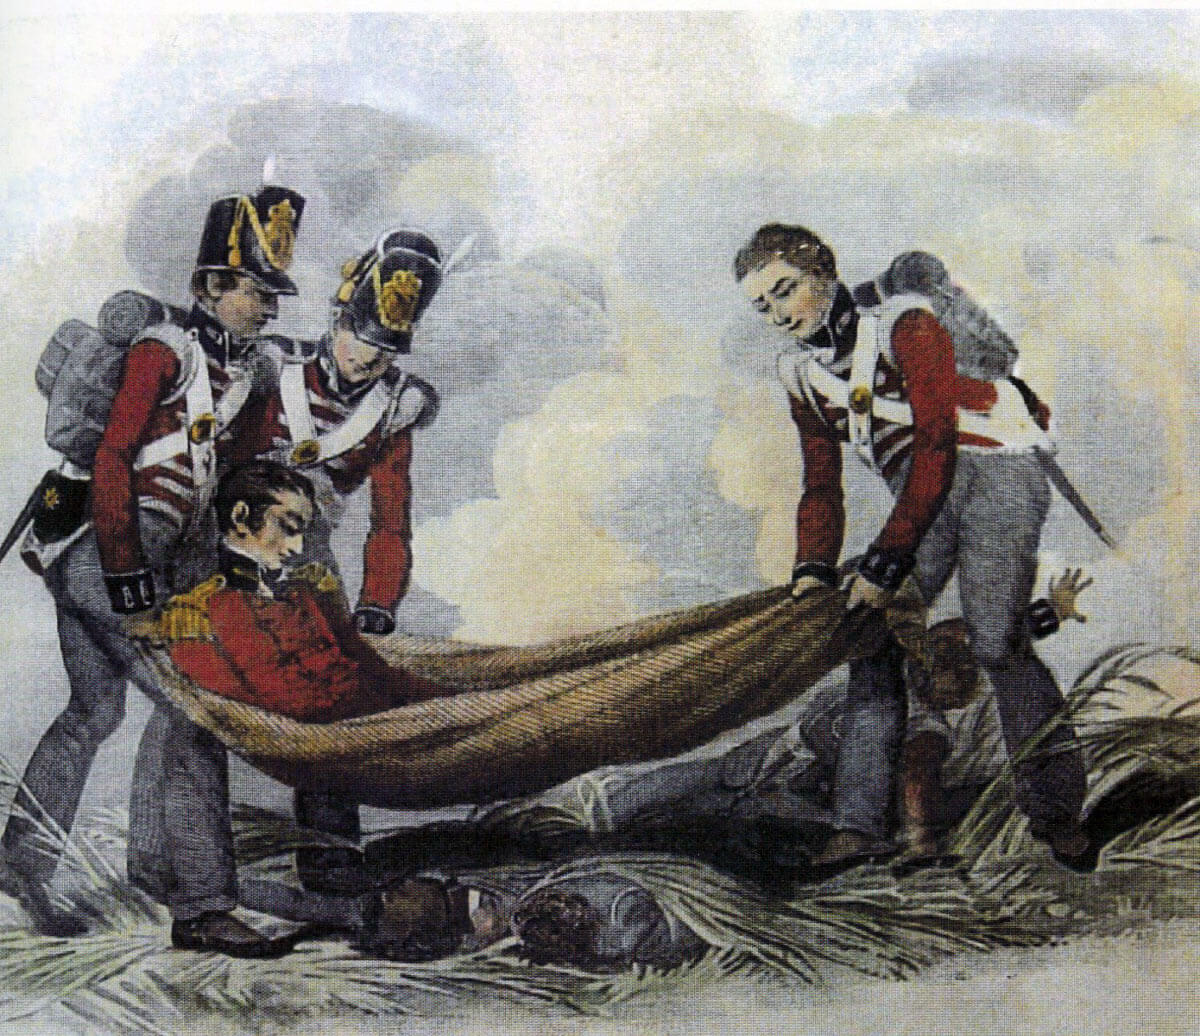 Fatally wounded Colonel Sir Alexander Gordon carried from the field at the Battle of Waterloo on 18th June 1815